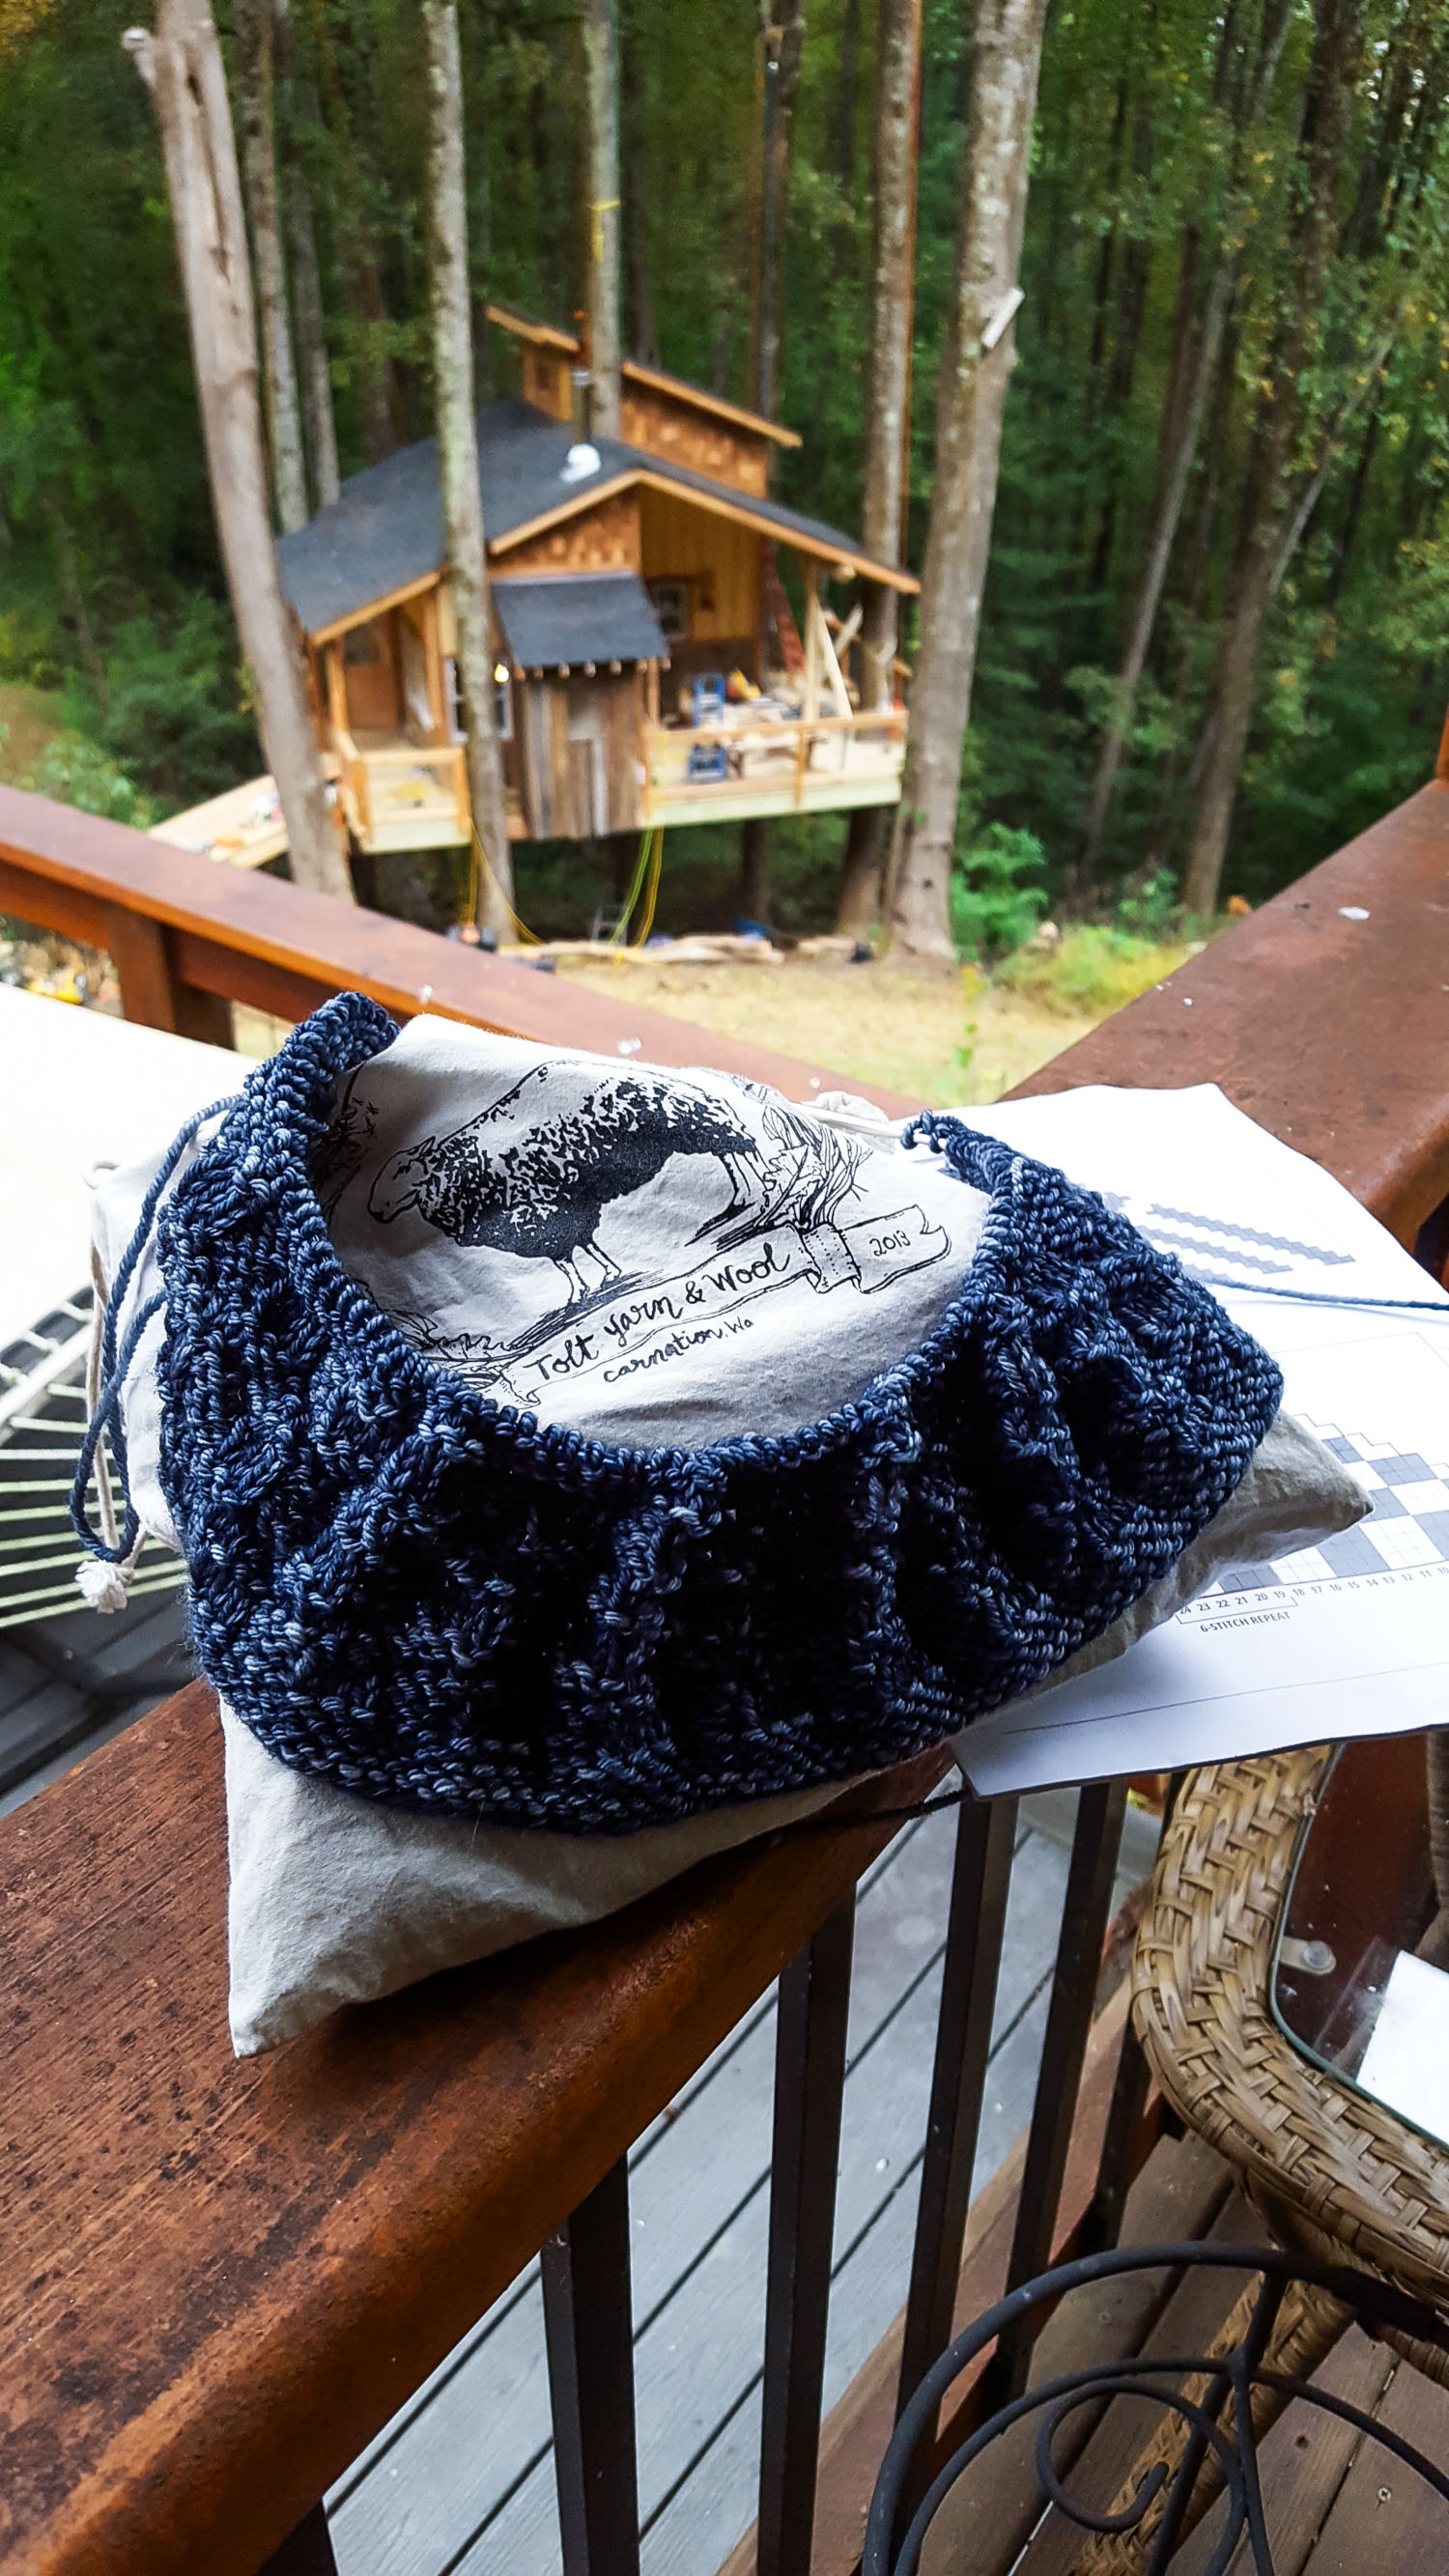 Judy's Knitting on the Build Site of Mike Reynold's Treehouse